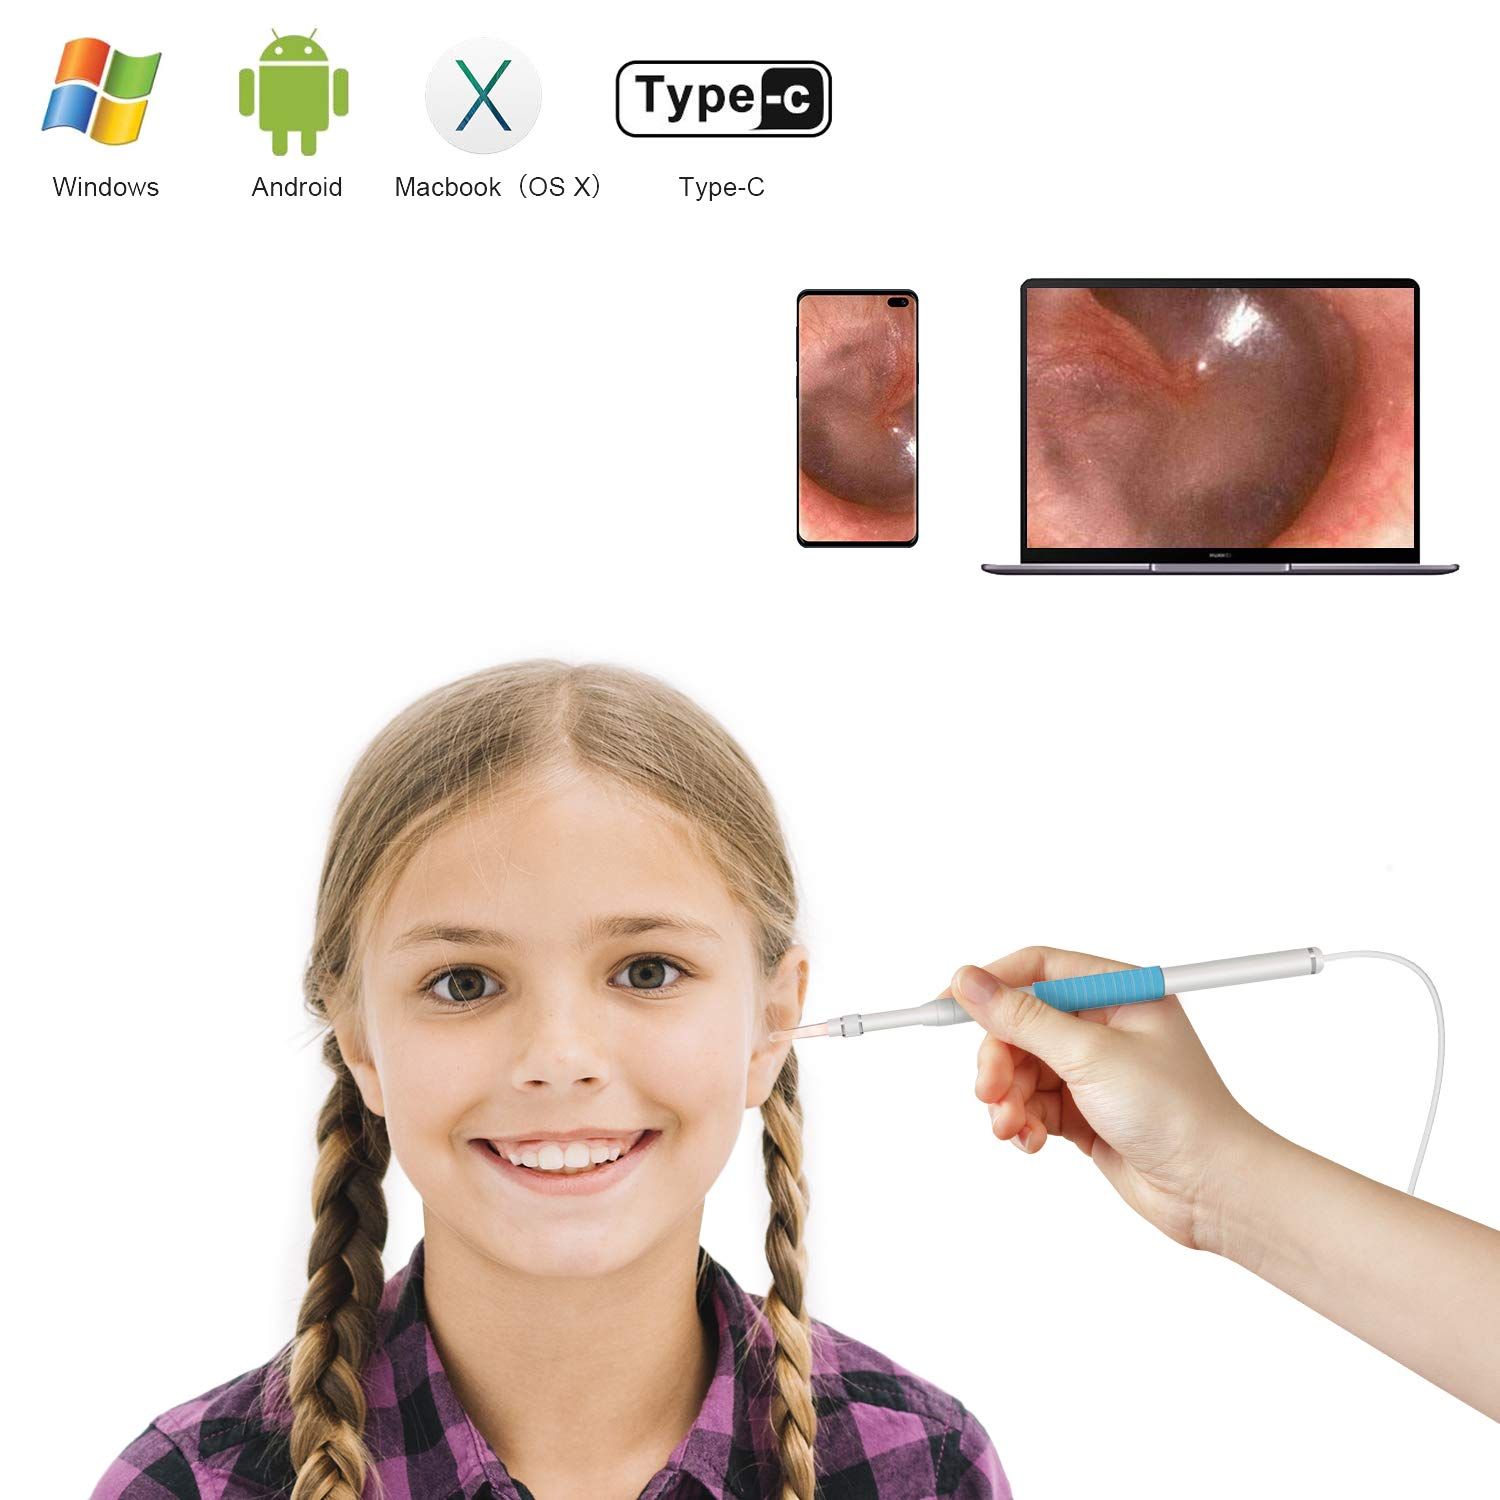 Ear Otoscope | HD Visual Ear Cleaner Ear Scope Endoscope Camera Earwax Remover with 6 LED Lights | for Adult Children Kids Veterinary | Android Smartphones, Windows, MAC PC Computer | Avalon Home by Avalon Home